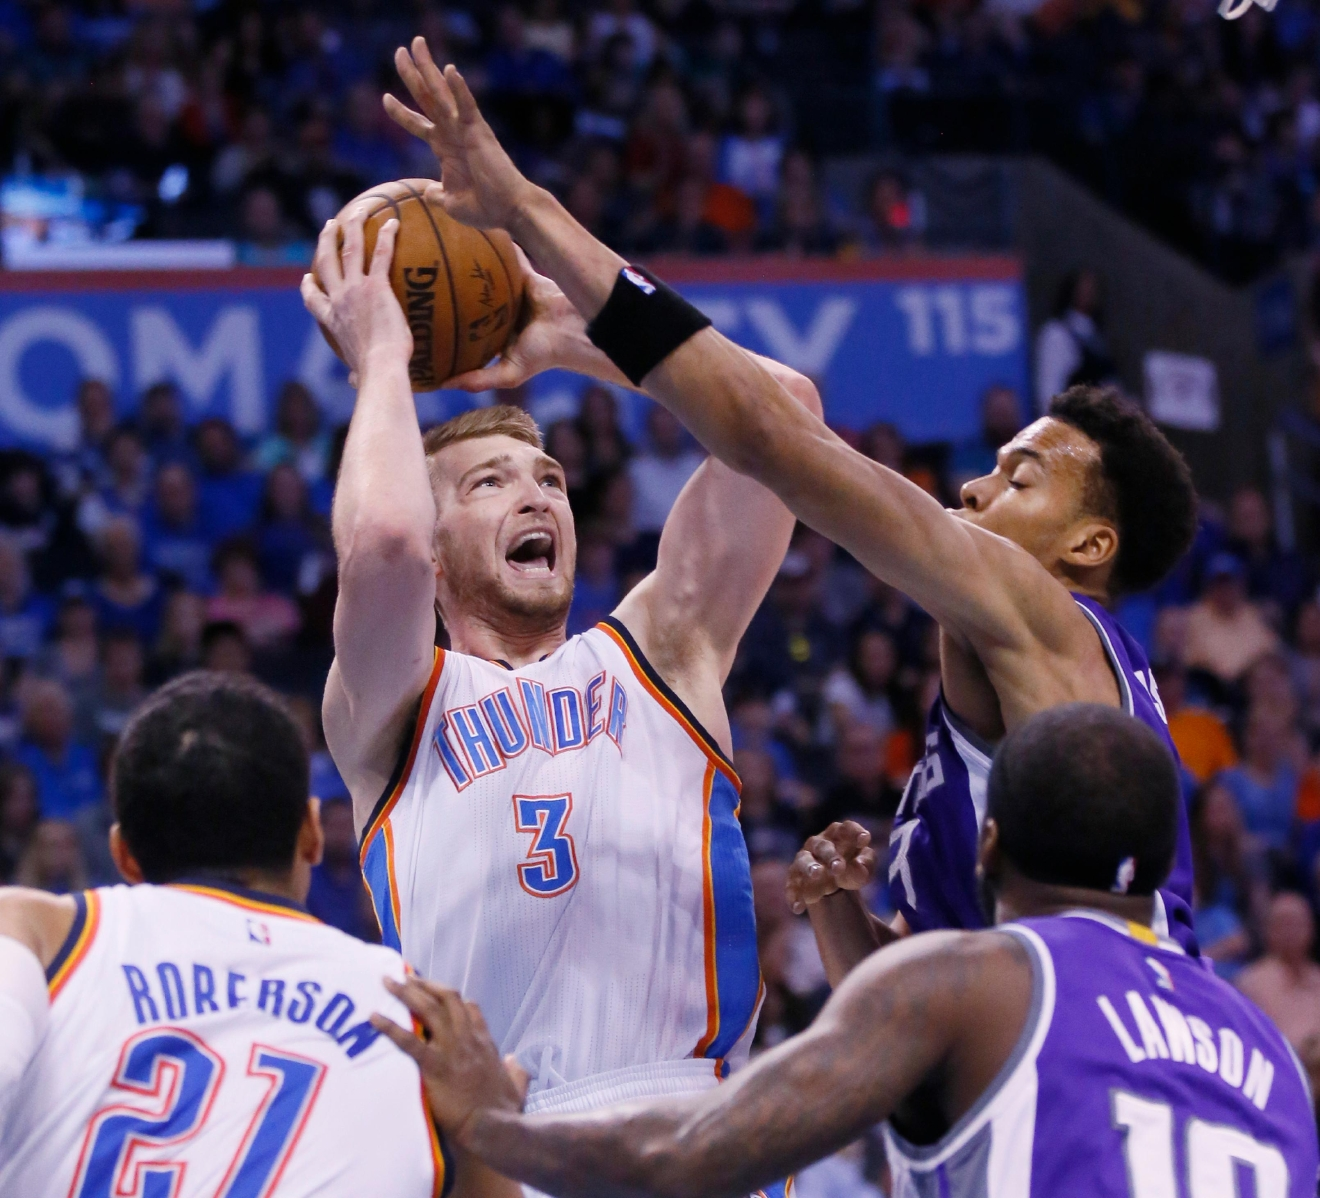 Oklahoma City Thunder forward Domantas Sabonis (3) is fouled by Sacramento Kings forward Skal Labissiere, right, in the first quarter of an NBA basketball game in Oklahoma City, Saturday, March 18, 2017. (AP Photo/Sue Ogrocki)